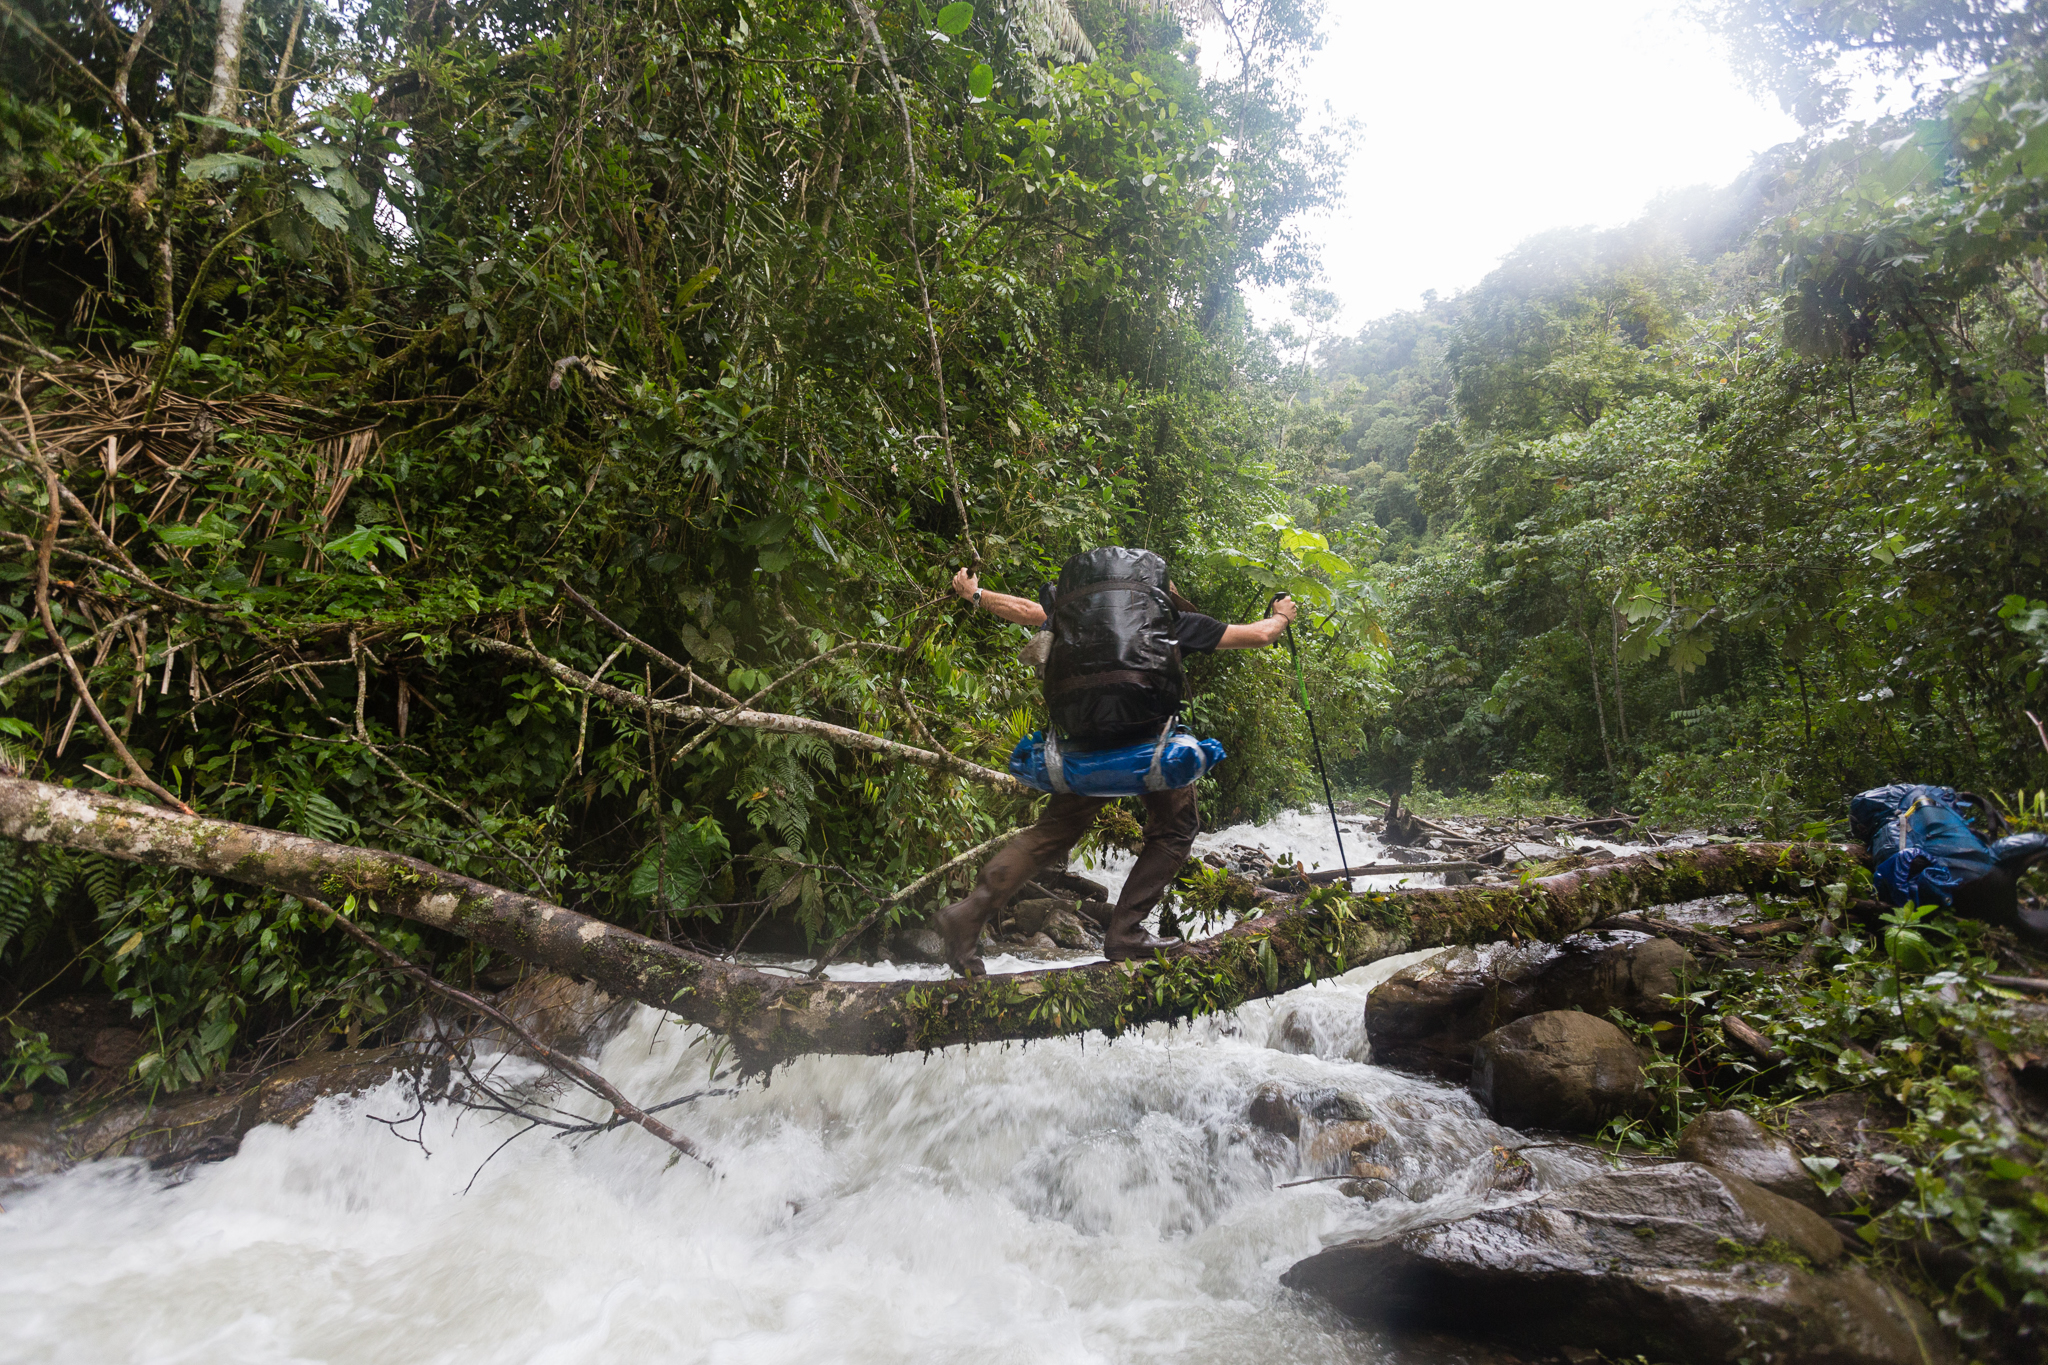 José Padial negotiates a perilous bridge crossing over the Sevishari Tiver, along the track between Camps 1 and 2. Photo by Andy Isaacson